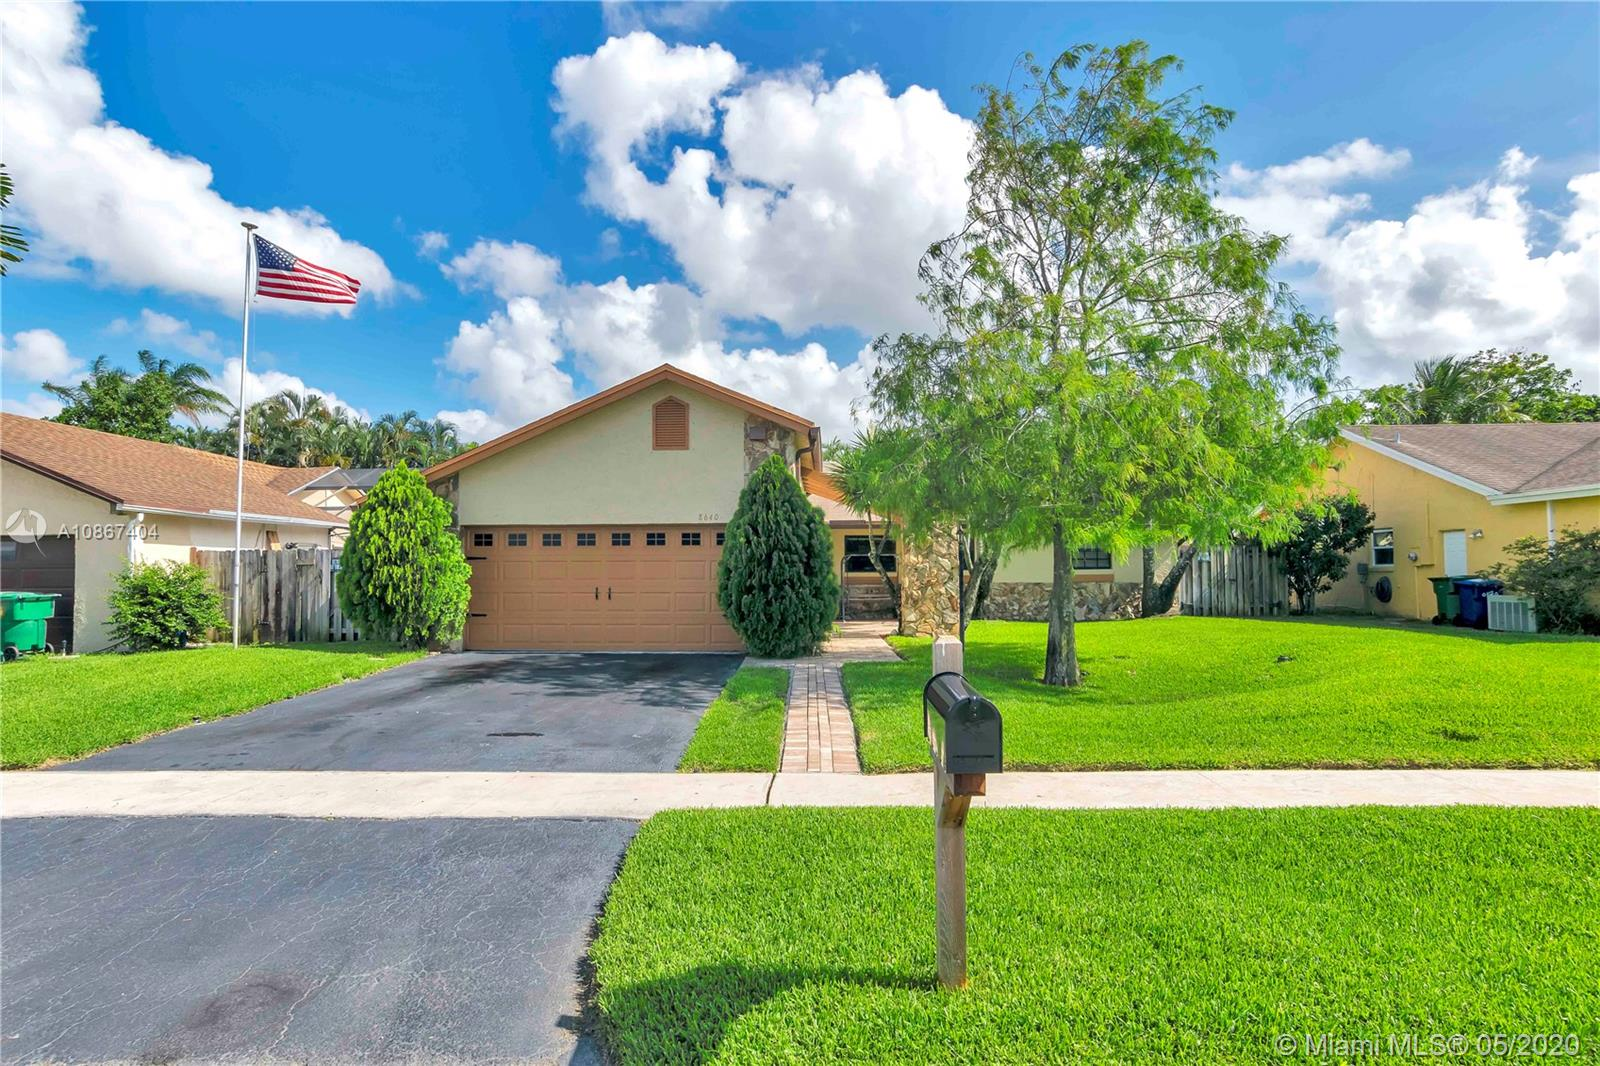 Gorgeous well maintained 3/2 with pool in Lauderhill! Pride in ownership shows in this home. Wood laminate floors & carpet in bedrooms (2018). Stone fireplace in the living room. Kitchen has wood cabinets, large island, and new glass stove top. Roof 2019, A/C 2012, Pool refinished with new motor, filter system, chlorinator and light (2020) Beautifully landscaped back yard is perfect for entertaining with gazebo and plenty of room to BBQ, and pavers surrounding pool area. Some other upgrades inc. interior paint (2018), tankless water heater, solar security lights, gutters, too many to list! Part of the garage has been converted to an extra room and office (can be converted back). Perfect for bigger families, in law quarter, and working from home. NO HOA! Within walking distance to schools!